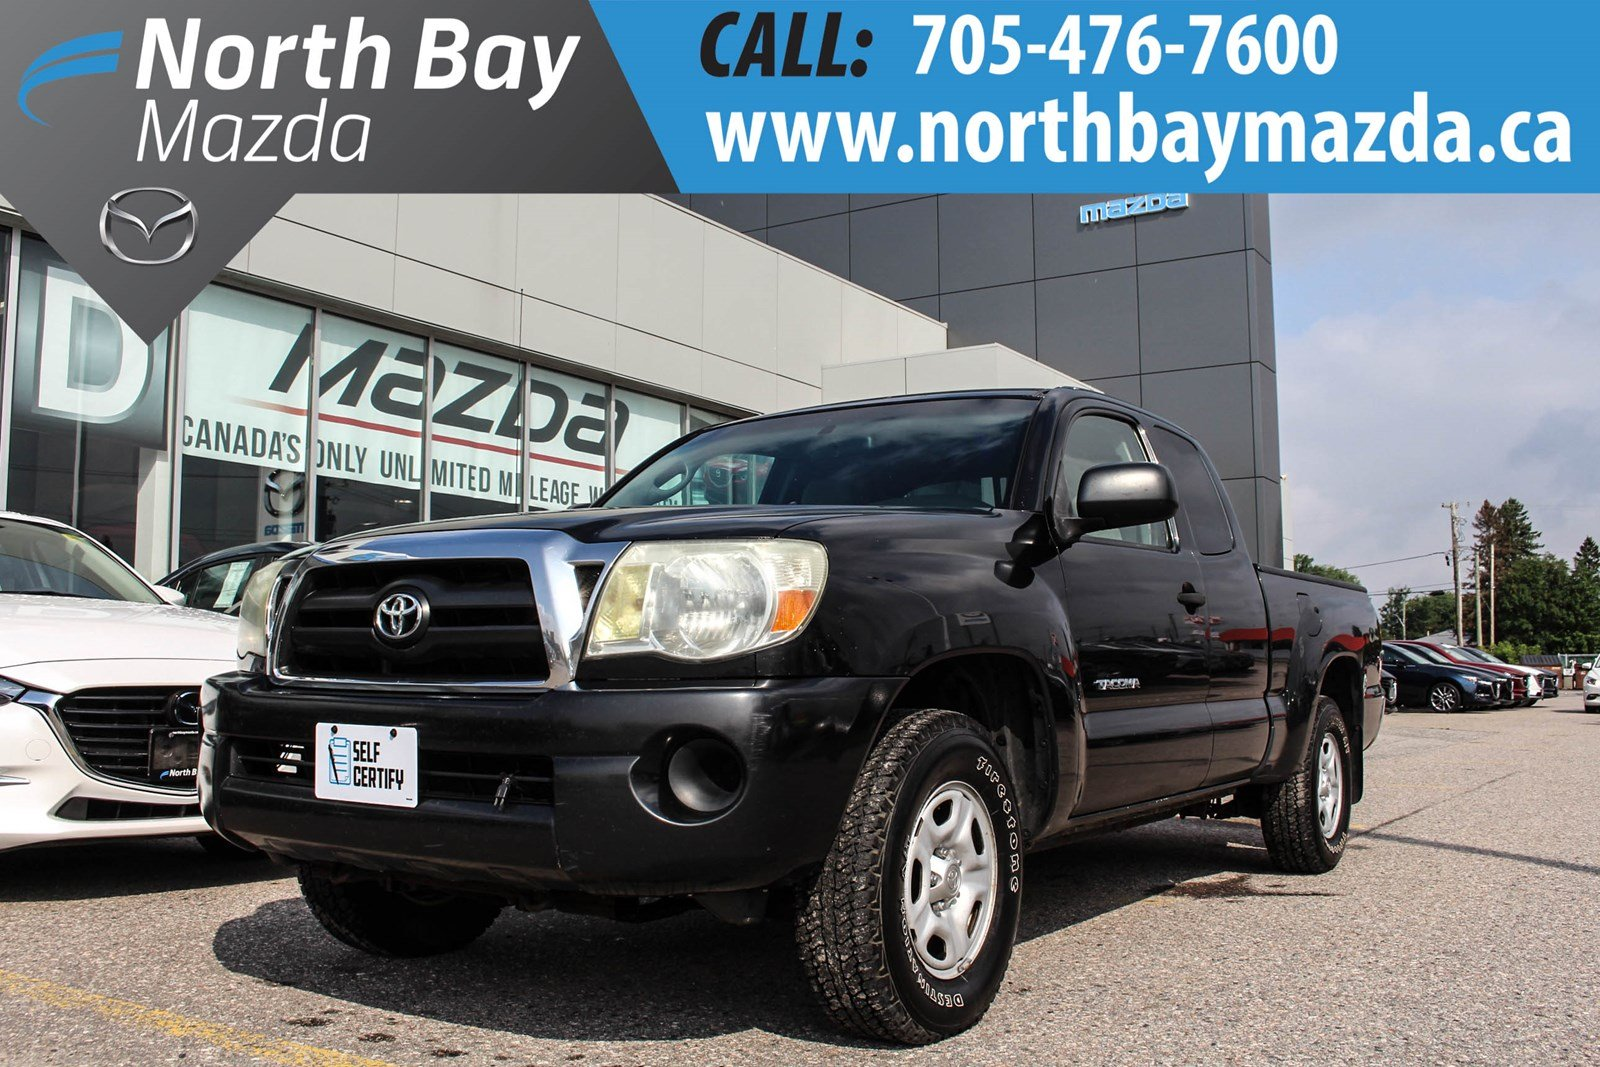 Pre-Owned 2007 Toyota Tacoma RWD Self Certify